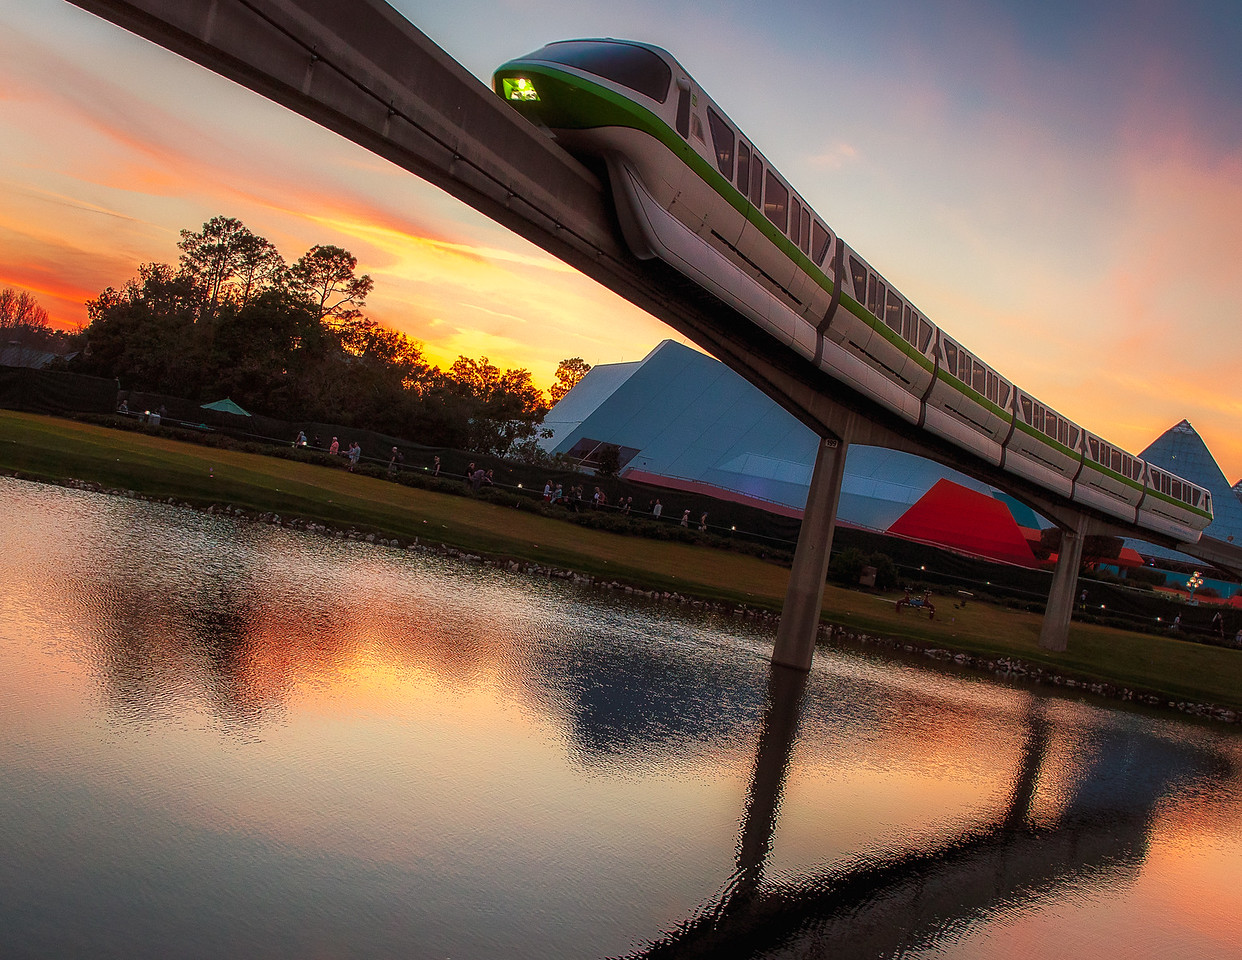 Monorail at Sunset, Epcot Center